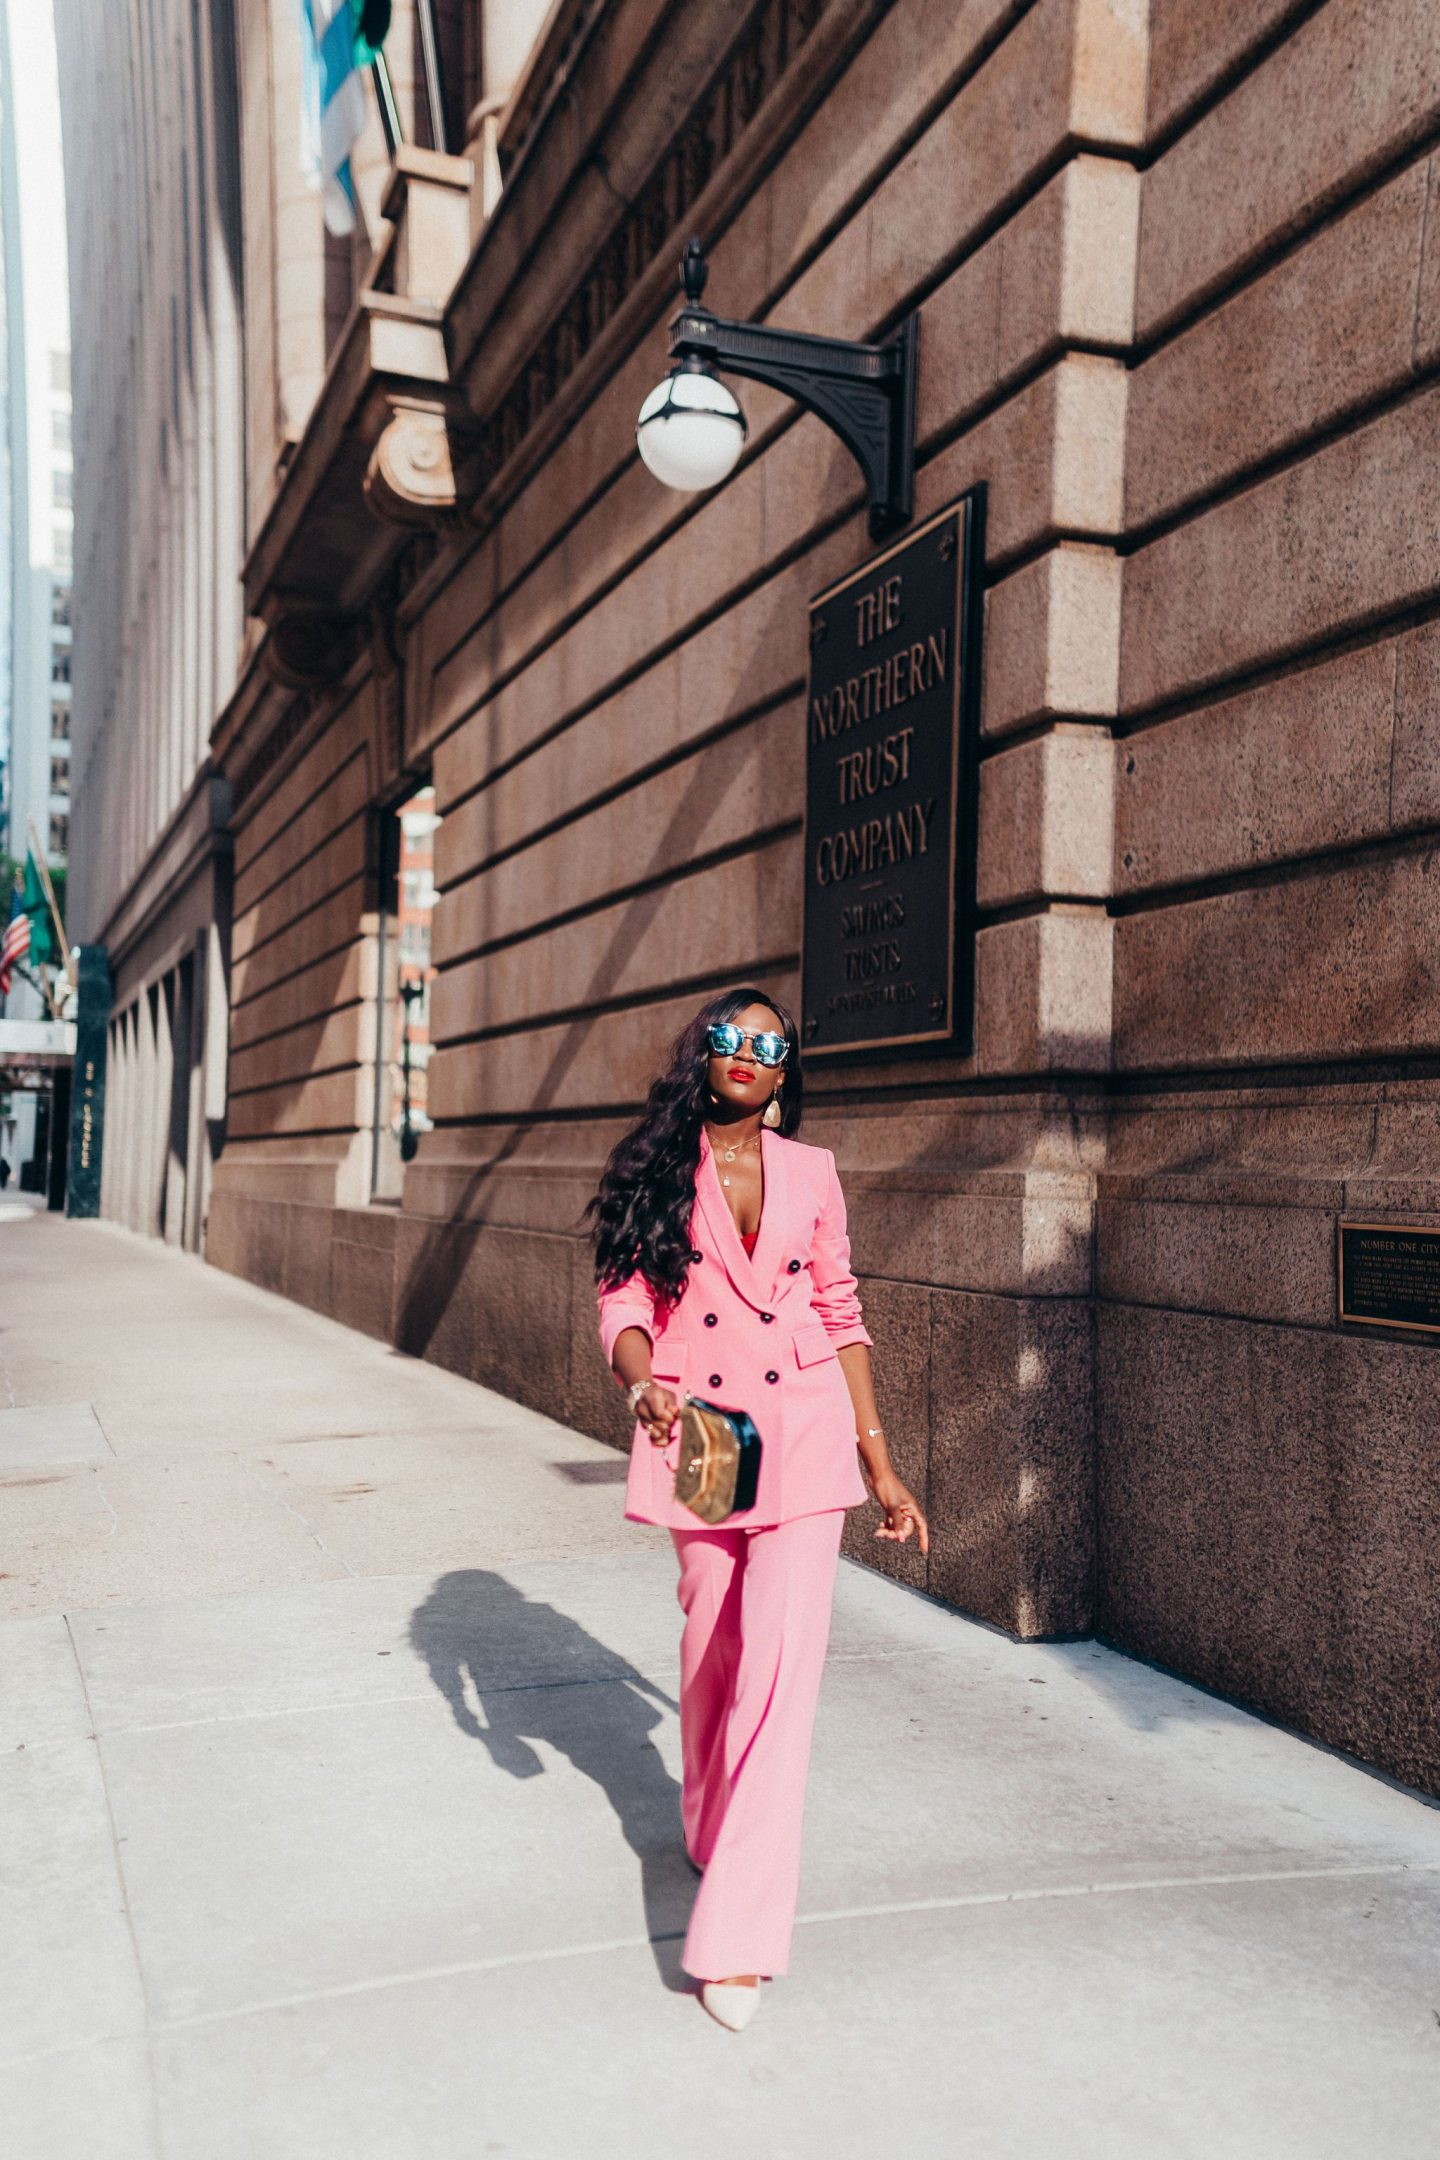 Jennifer Ibe in Chicago wearing Pink Pant suit